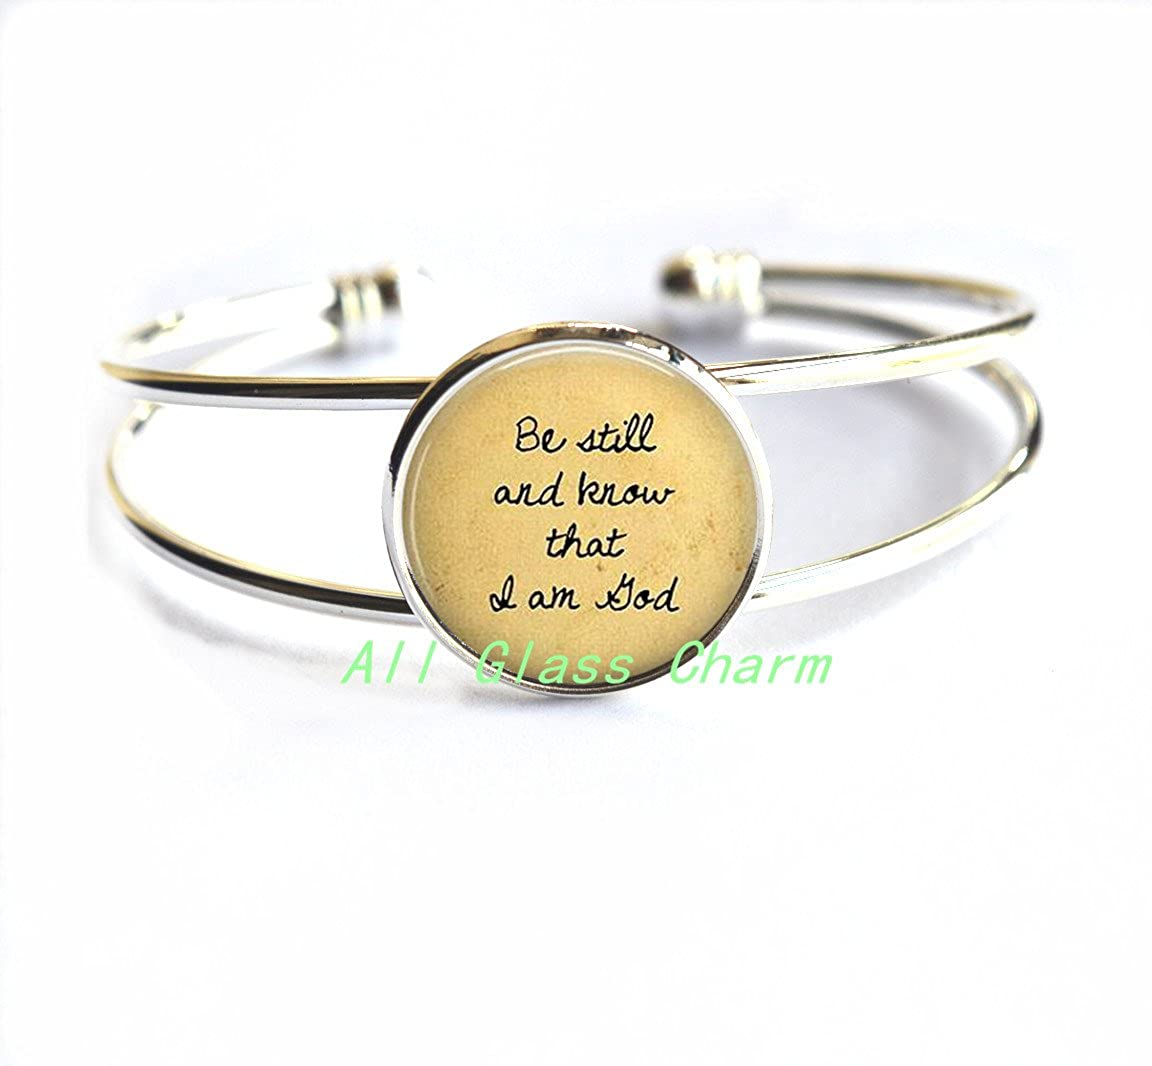 Scripture Bracelet Religious Jewelry Faith Charms,AS080 Faith Jewelry Religious Bracelet Bracelets Charming Bracelet,Be still and know that I am God